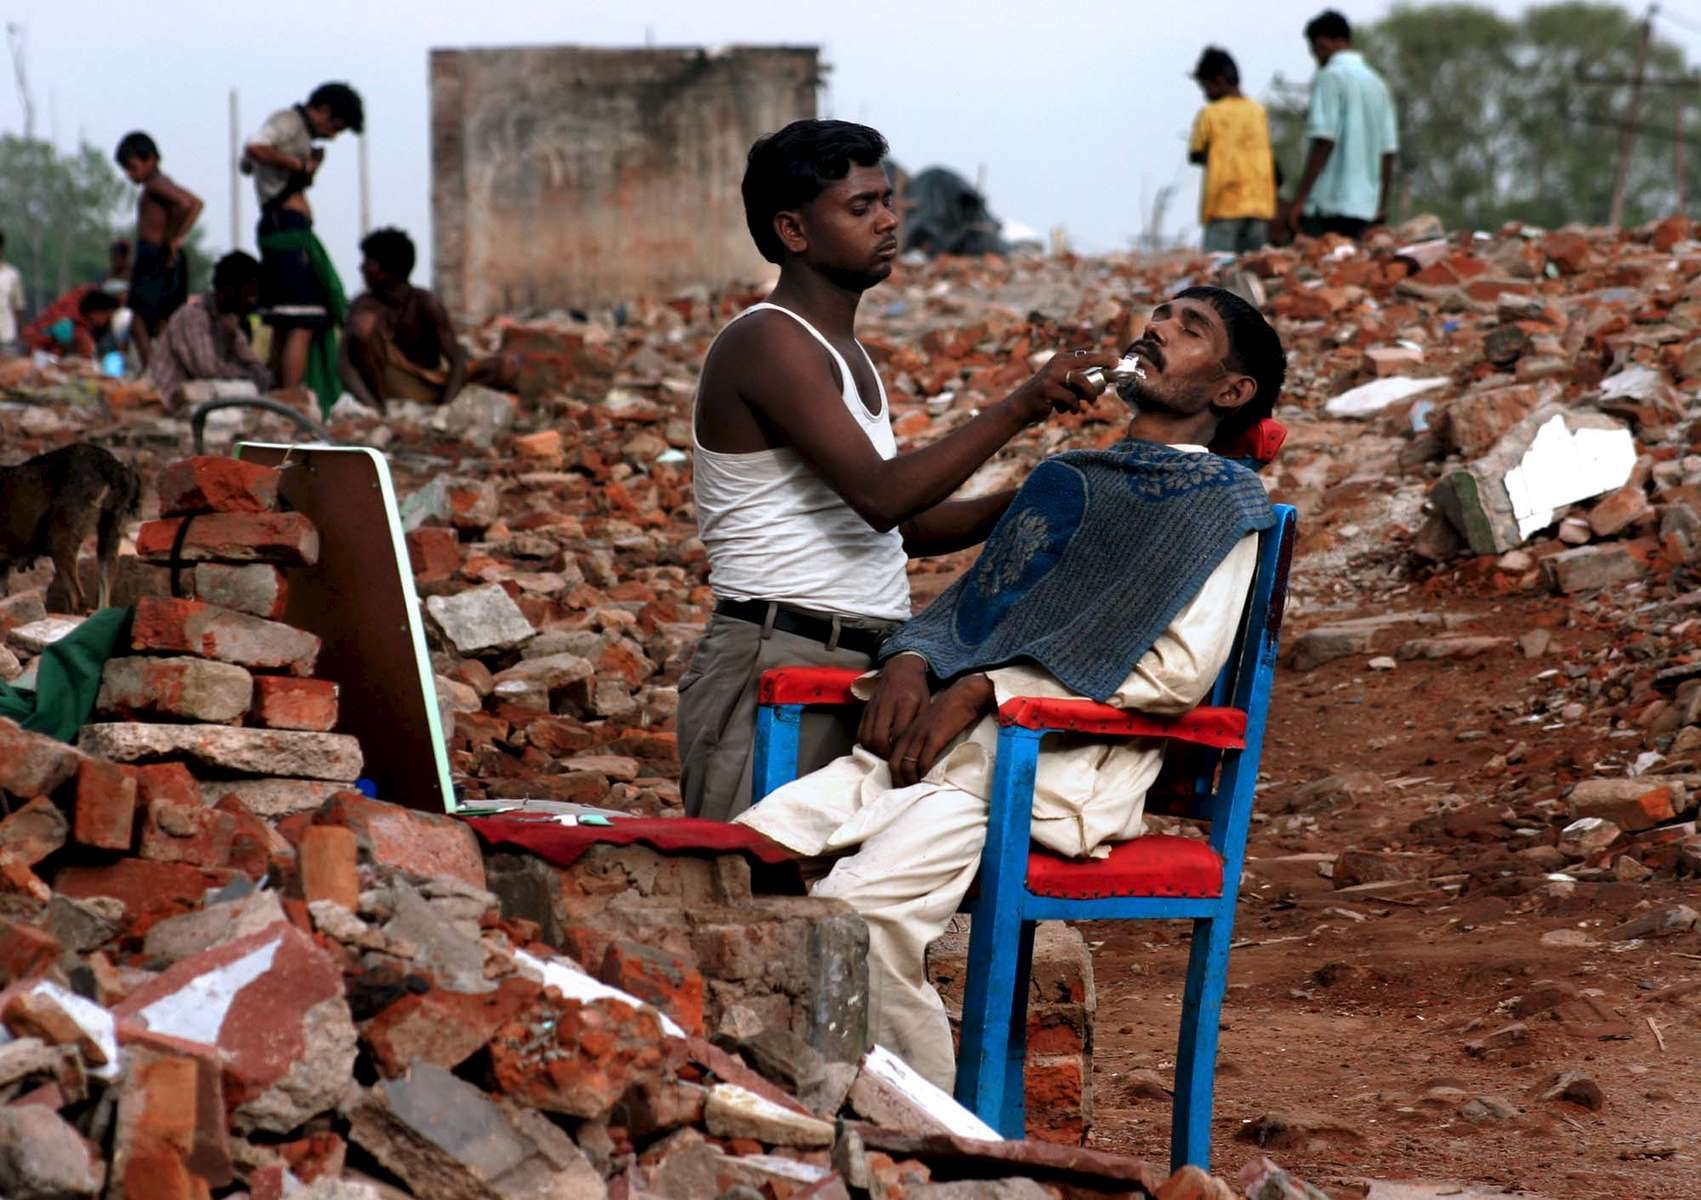 A barber shaves a customer at a roadside stand in New Delhi in the Yamuna Pushta region.